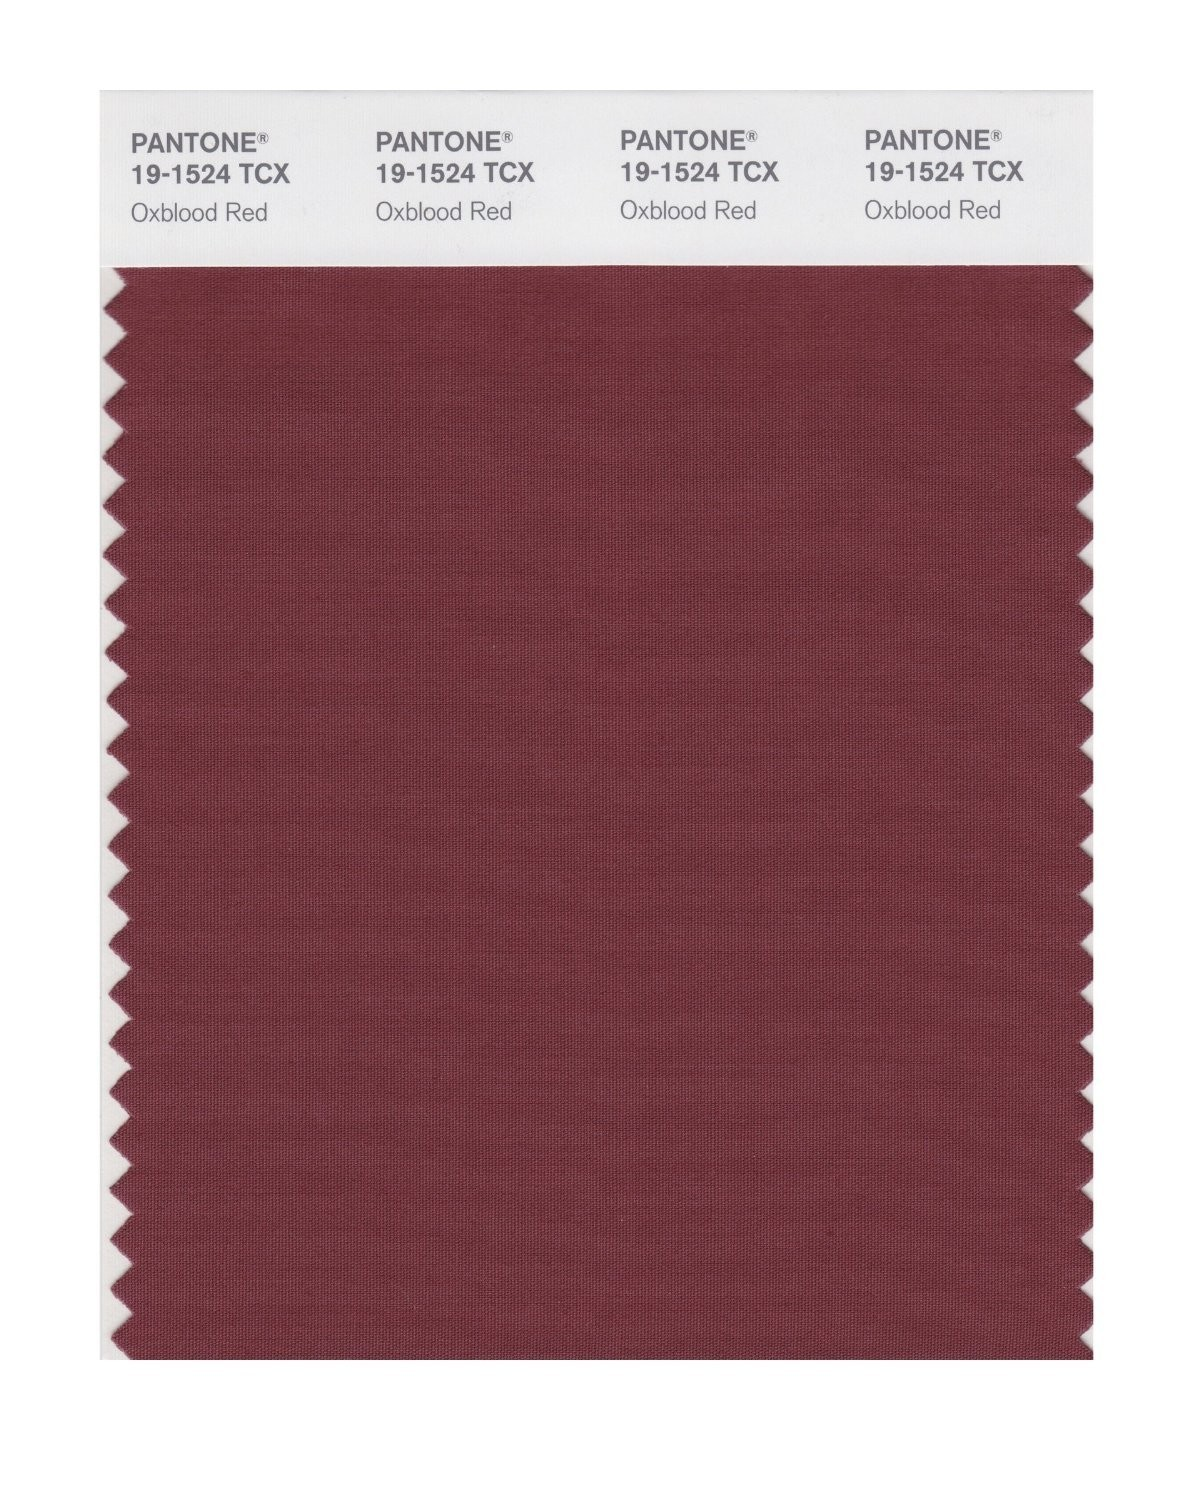 Pantone 19-1524 TCX Swatch Card Oxblood Red